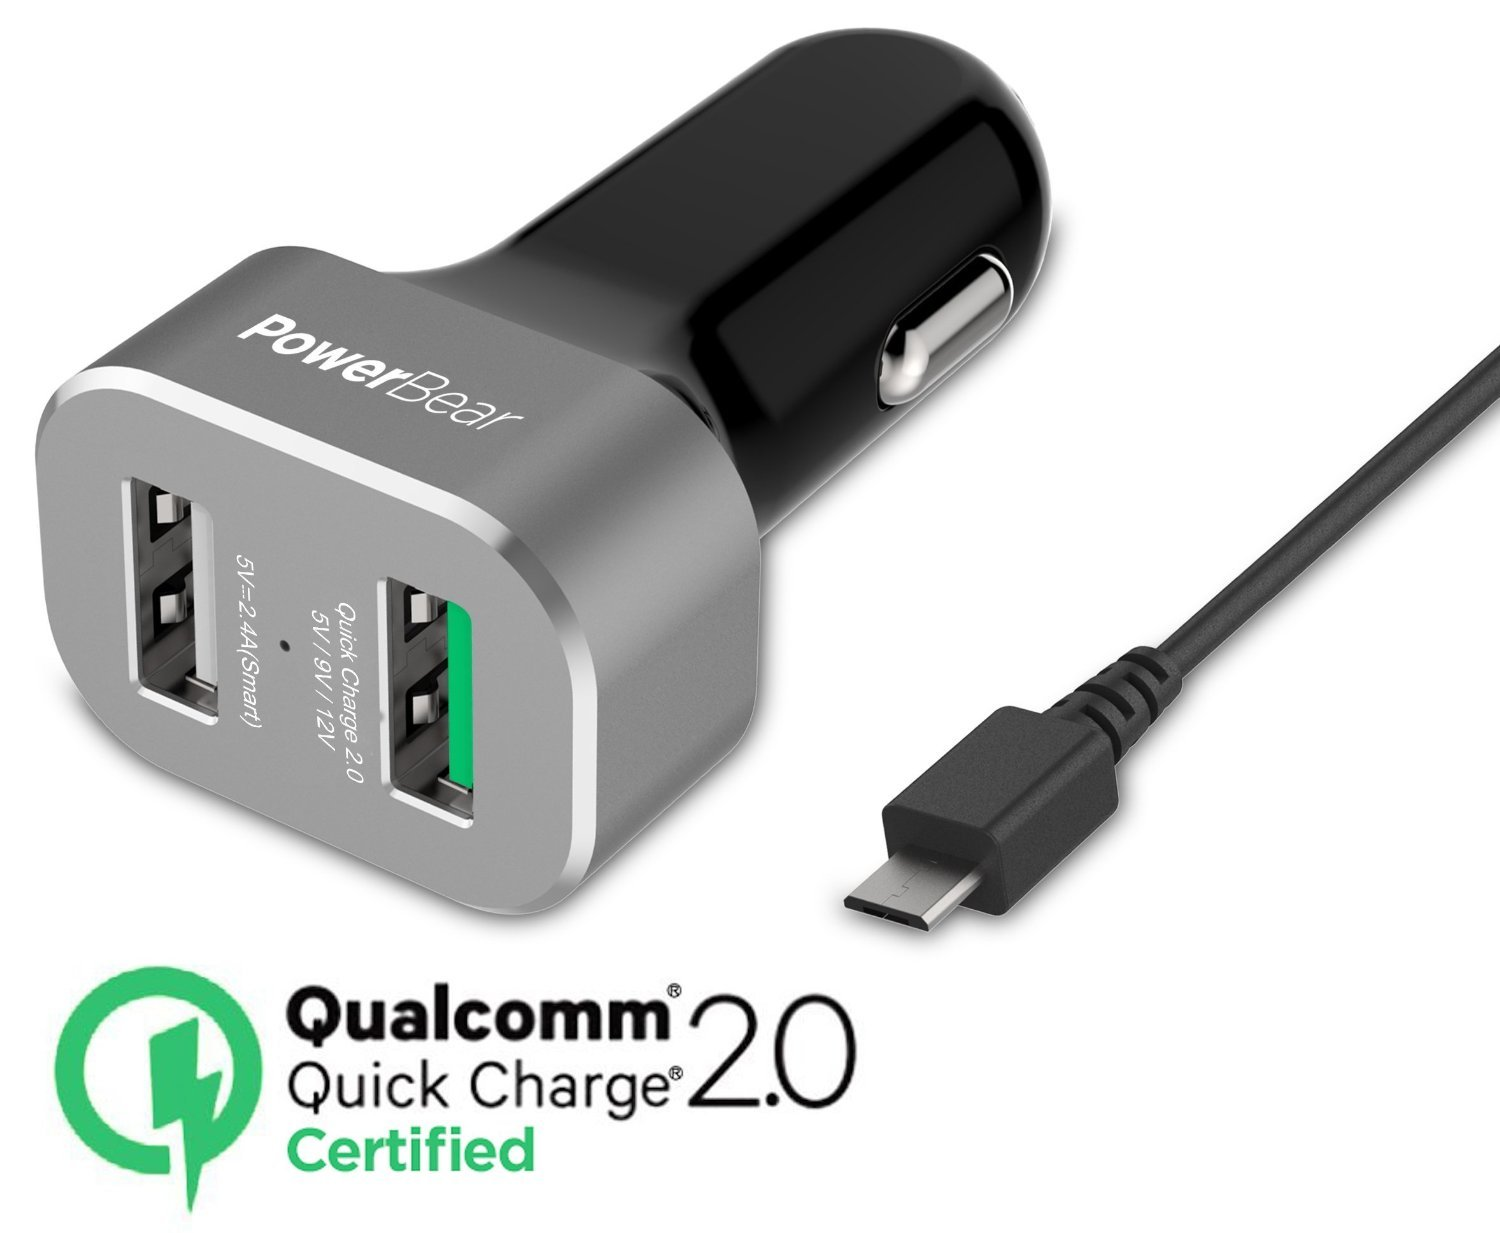 PowerBear Dual Port Quick Charge 2.0 Car Charger | Upgraded Version 2-Port USB Car Charger Dual-USB Ultra Fast Car Charger USB [Qualcomm 2.0 Certified] - Black [24 Month Warranty]